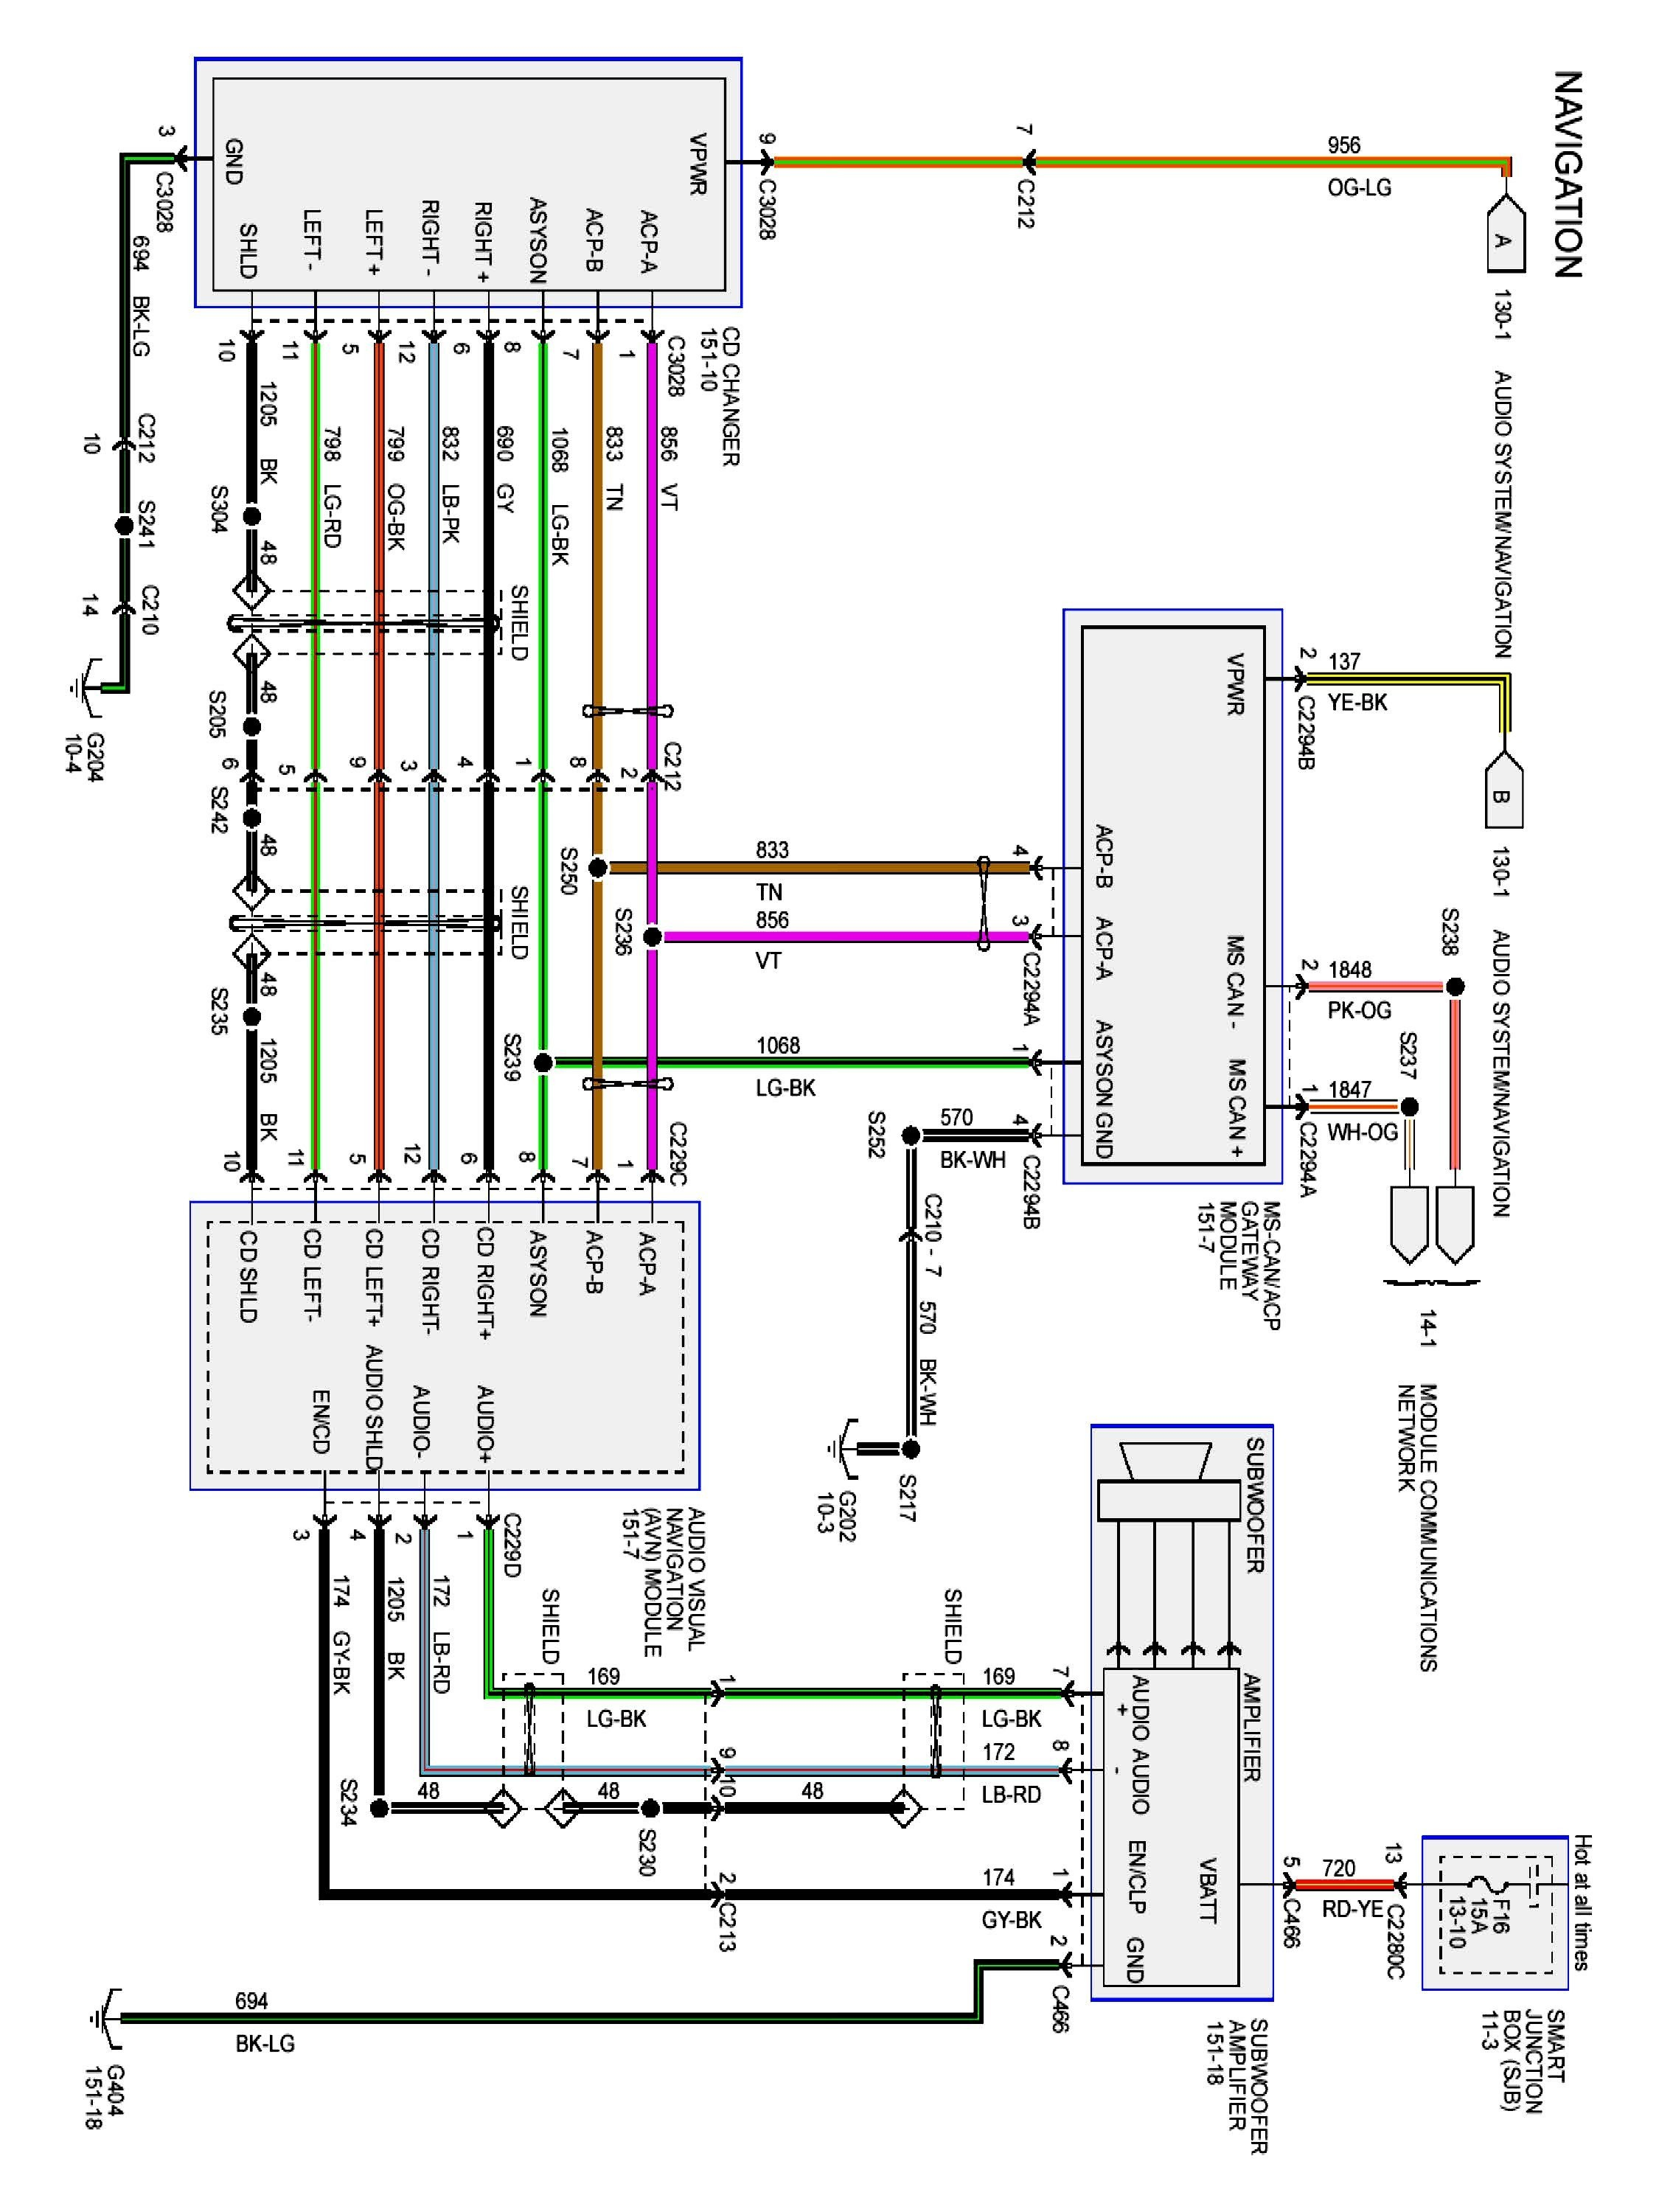 2010 F 150 Ignition Wiring Diagram - Data Wiring Diagrams •